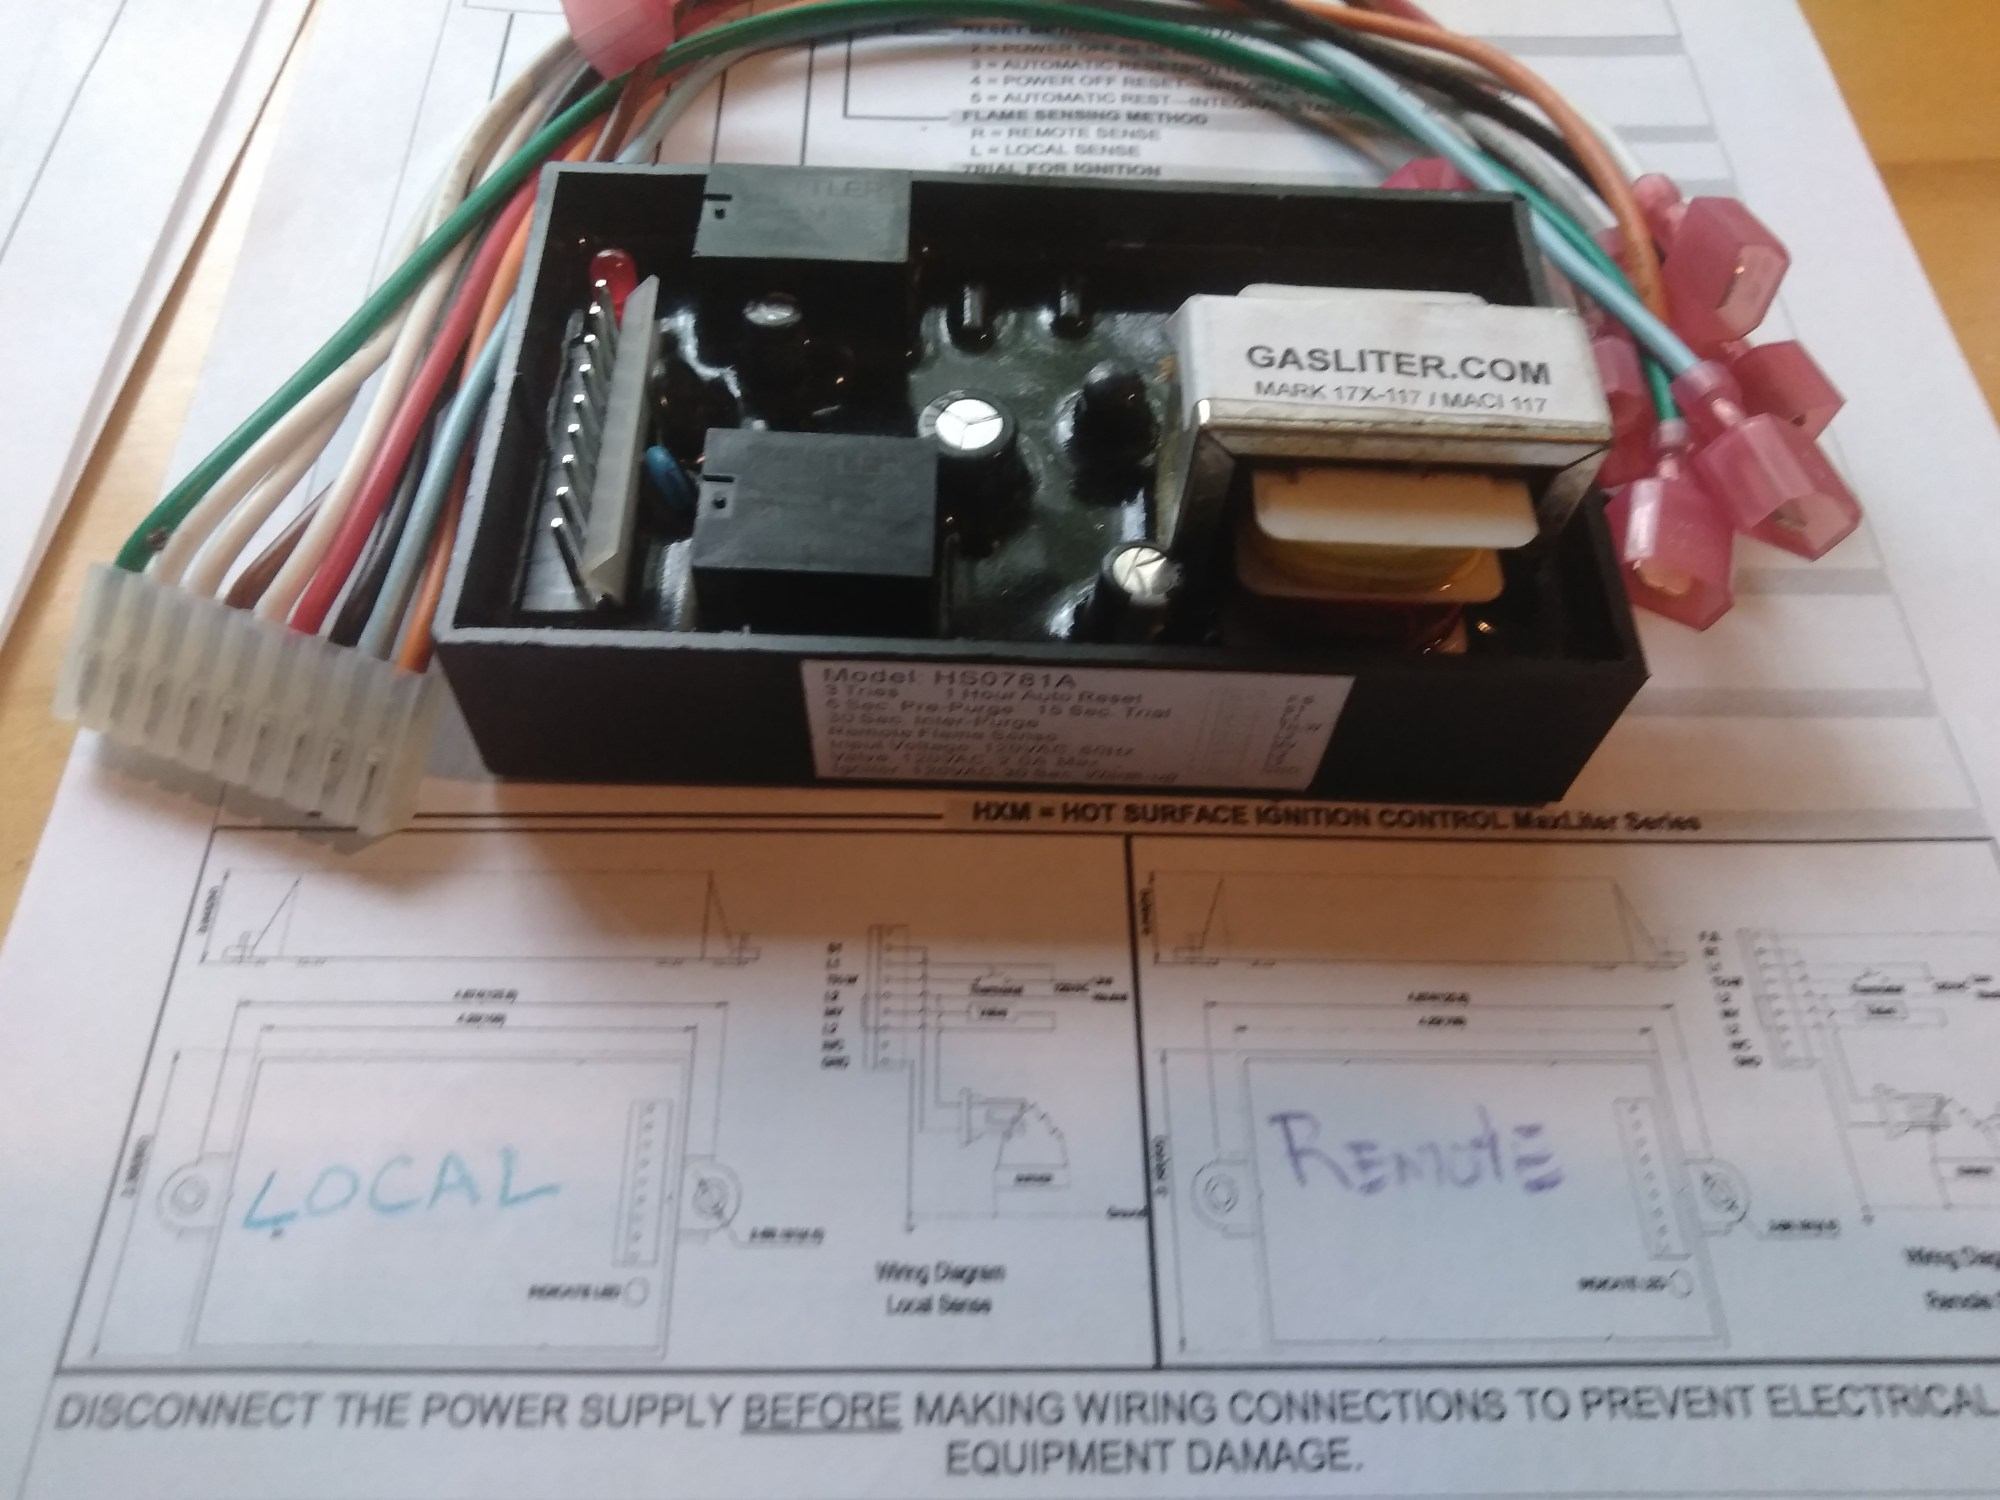 hight resolution of fenwal ignition module wiring diagram for 35 725206 117 wiringmaci 117x 117v hot surface ignitor